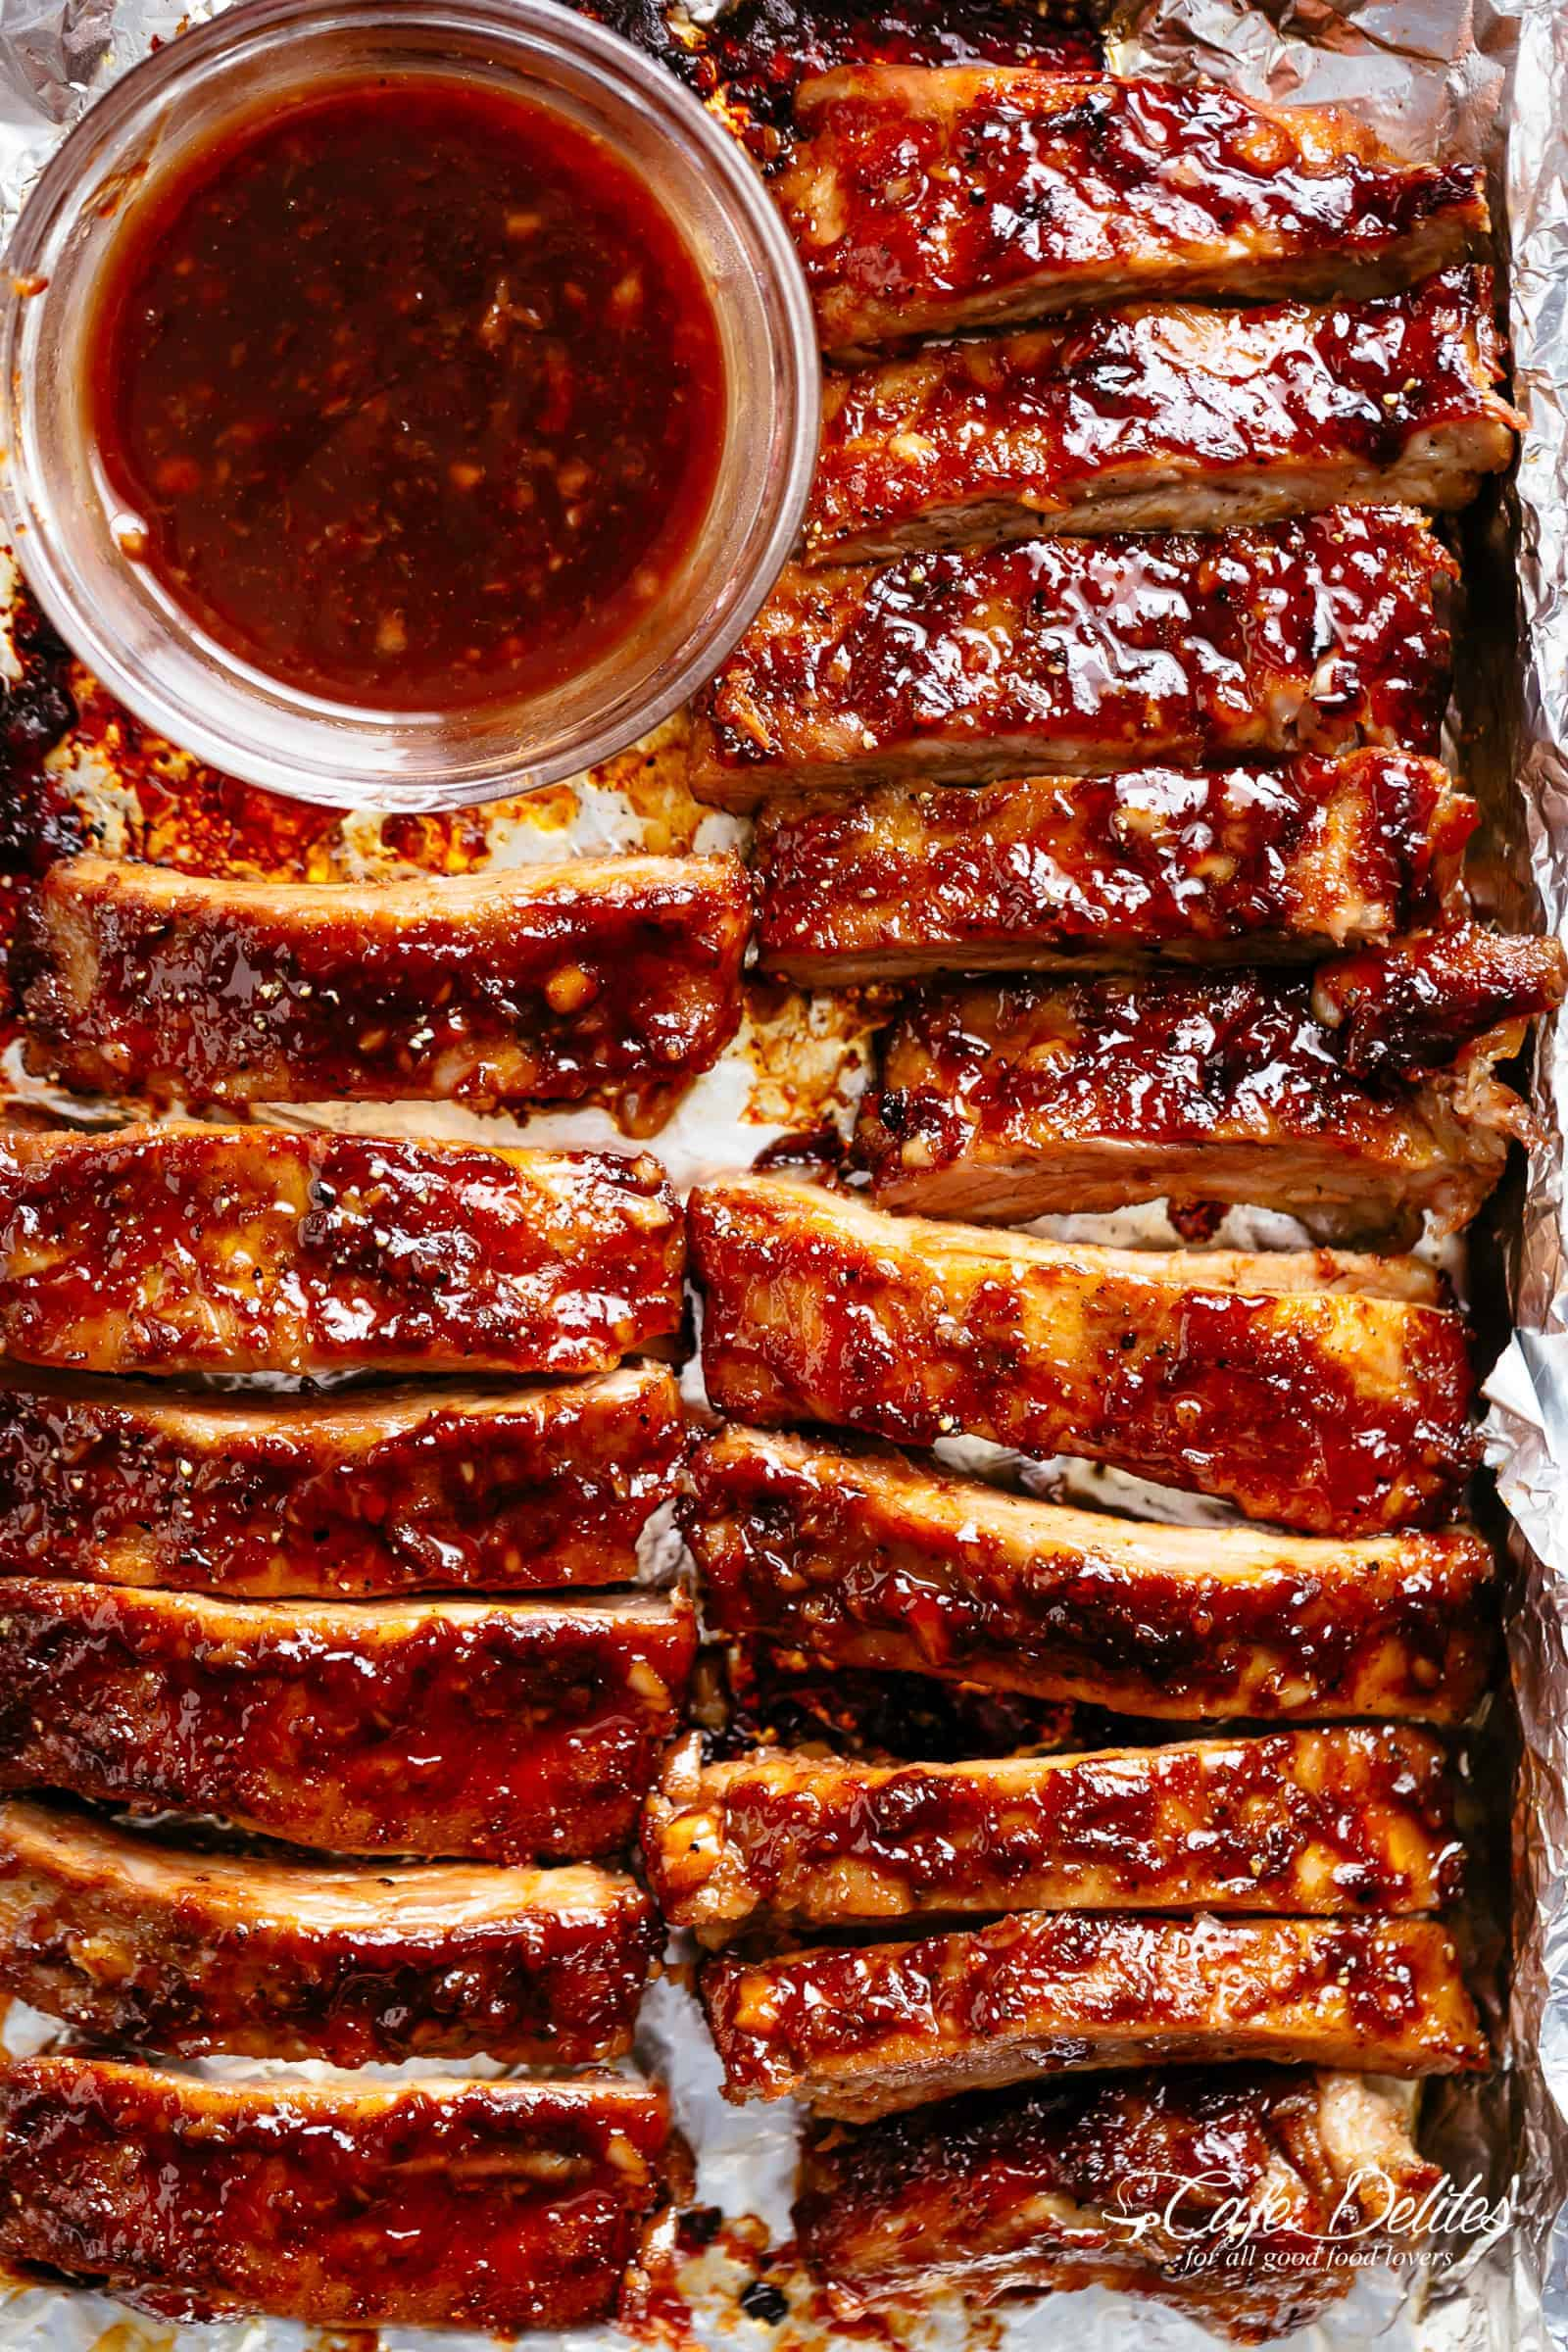 How to cook boneless pork spare ribs